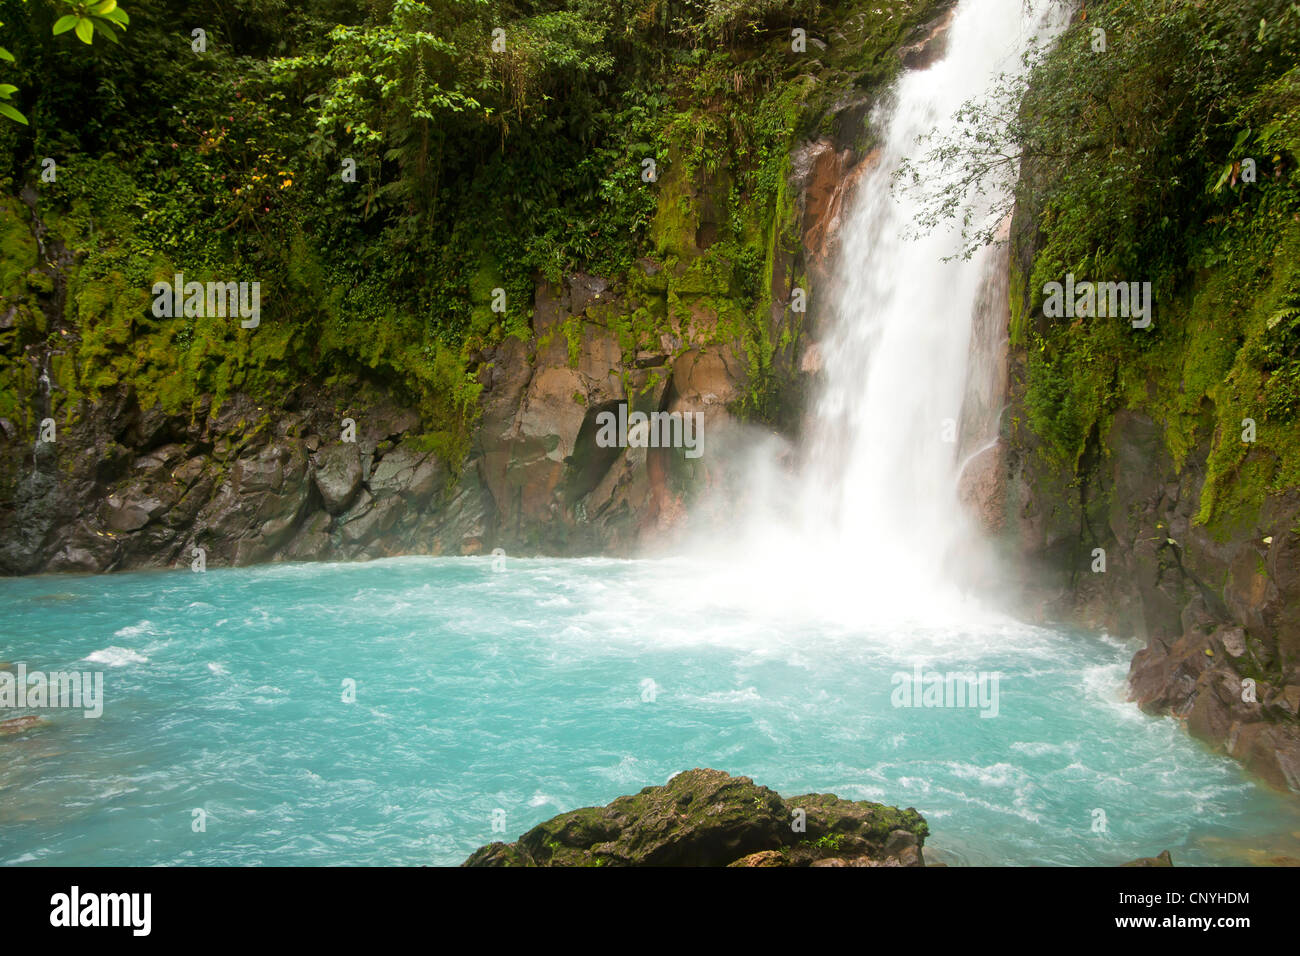 Waterfall with the blue waters of the Rio Celeste in VolcanTenorio National Park, Costa Rica, Central America - Stock Image